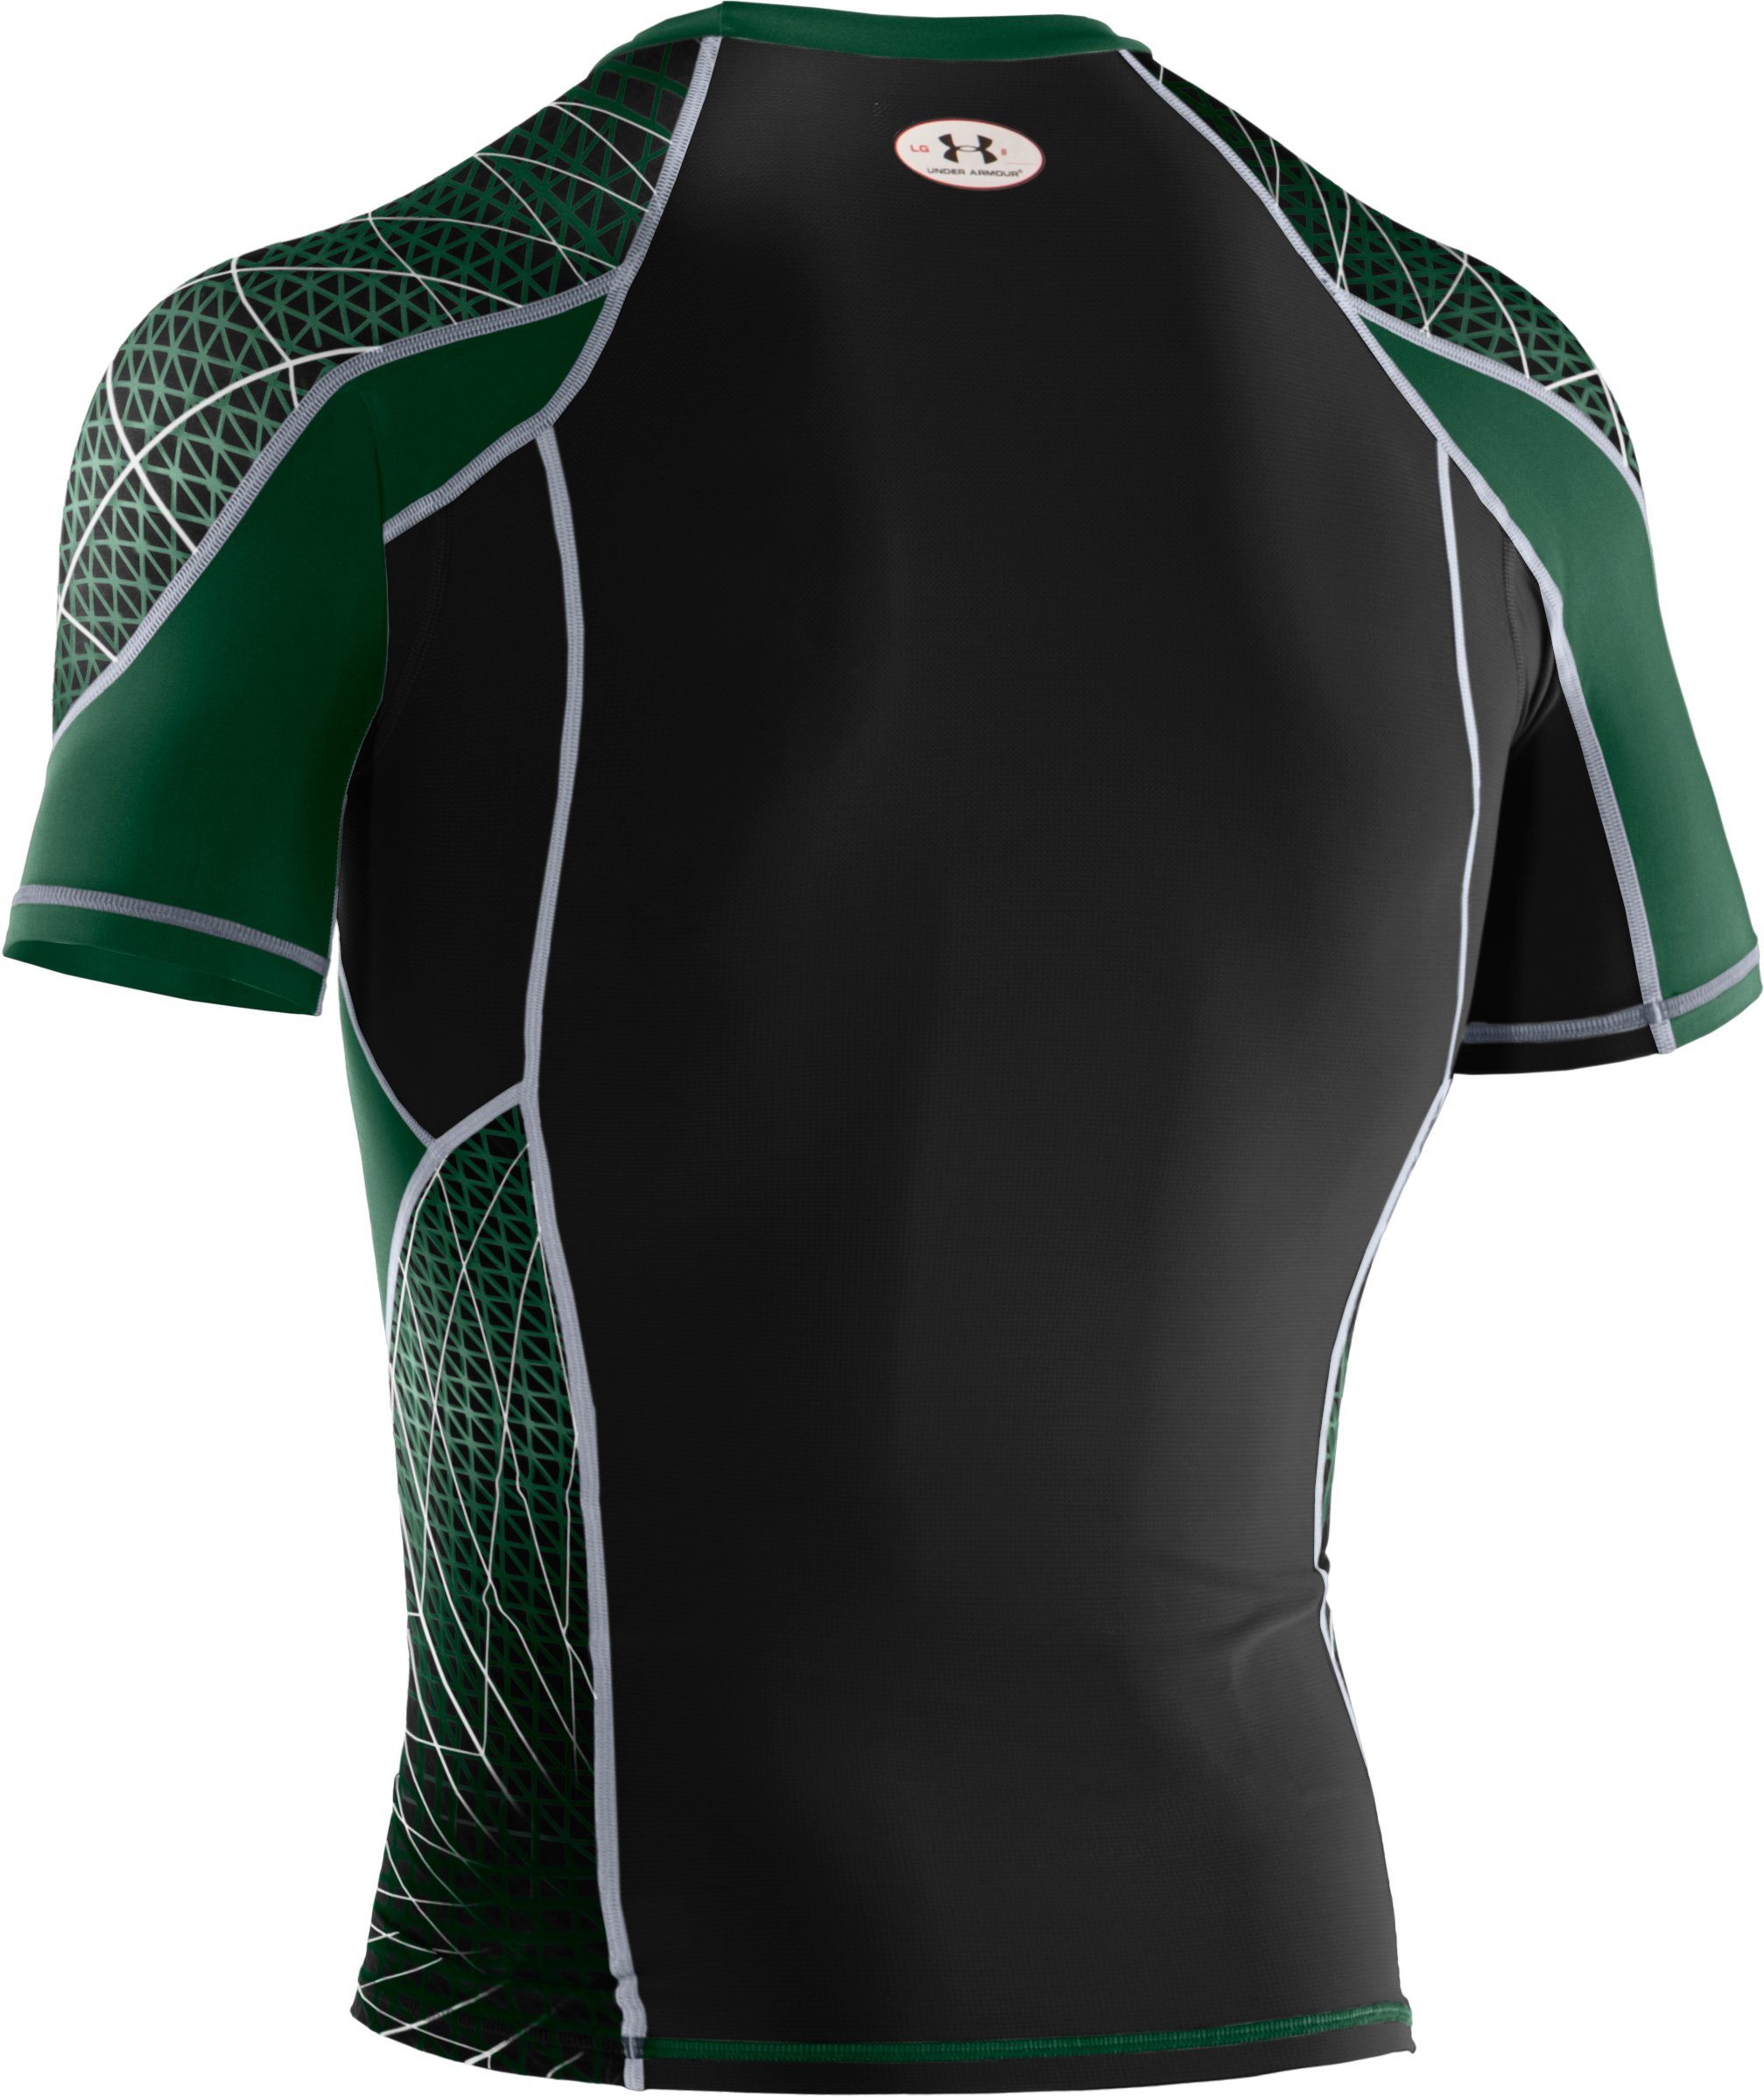 Men's NFL Combine Authentic Warp Speed Short Sleeve, Forest Green, undefined